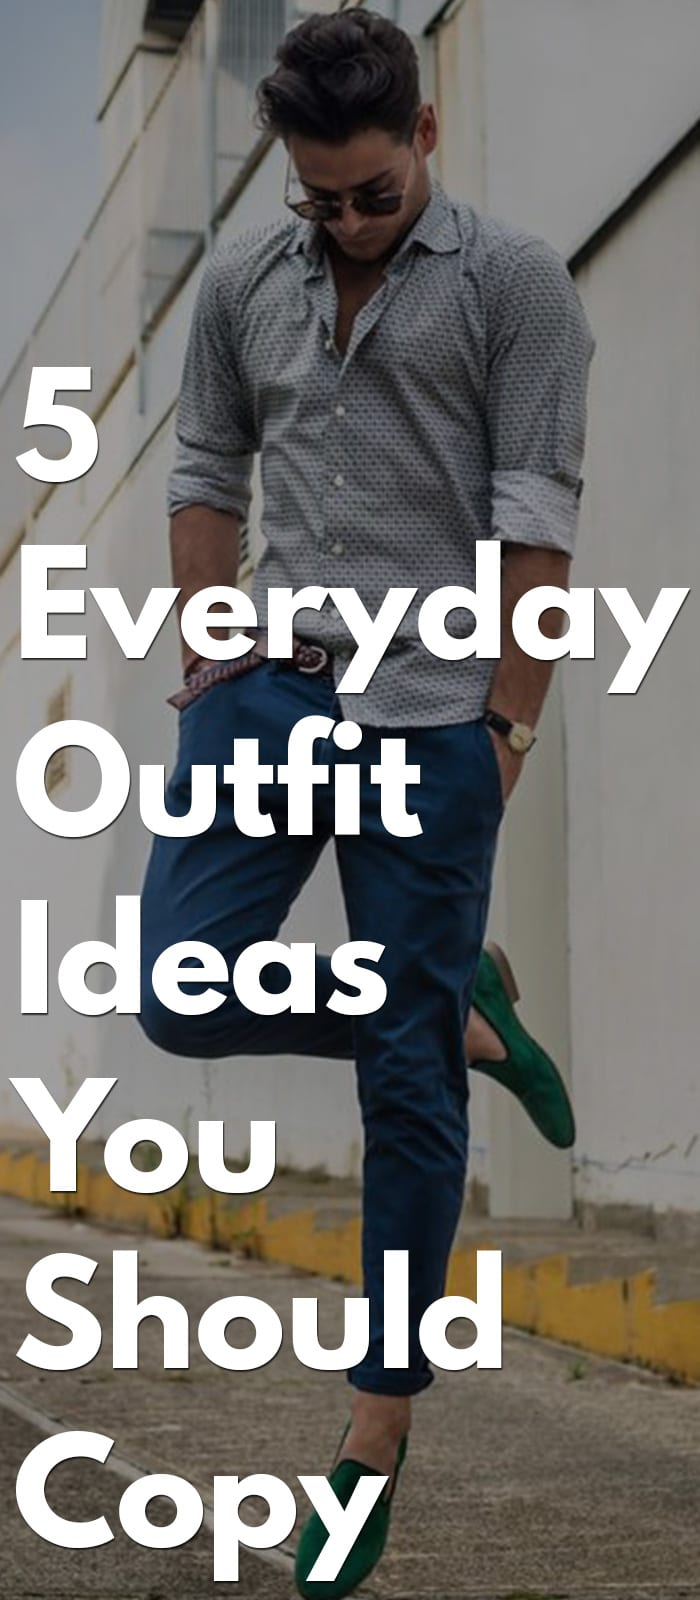 5 Everyday Outfit Ideas You Should Copy